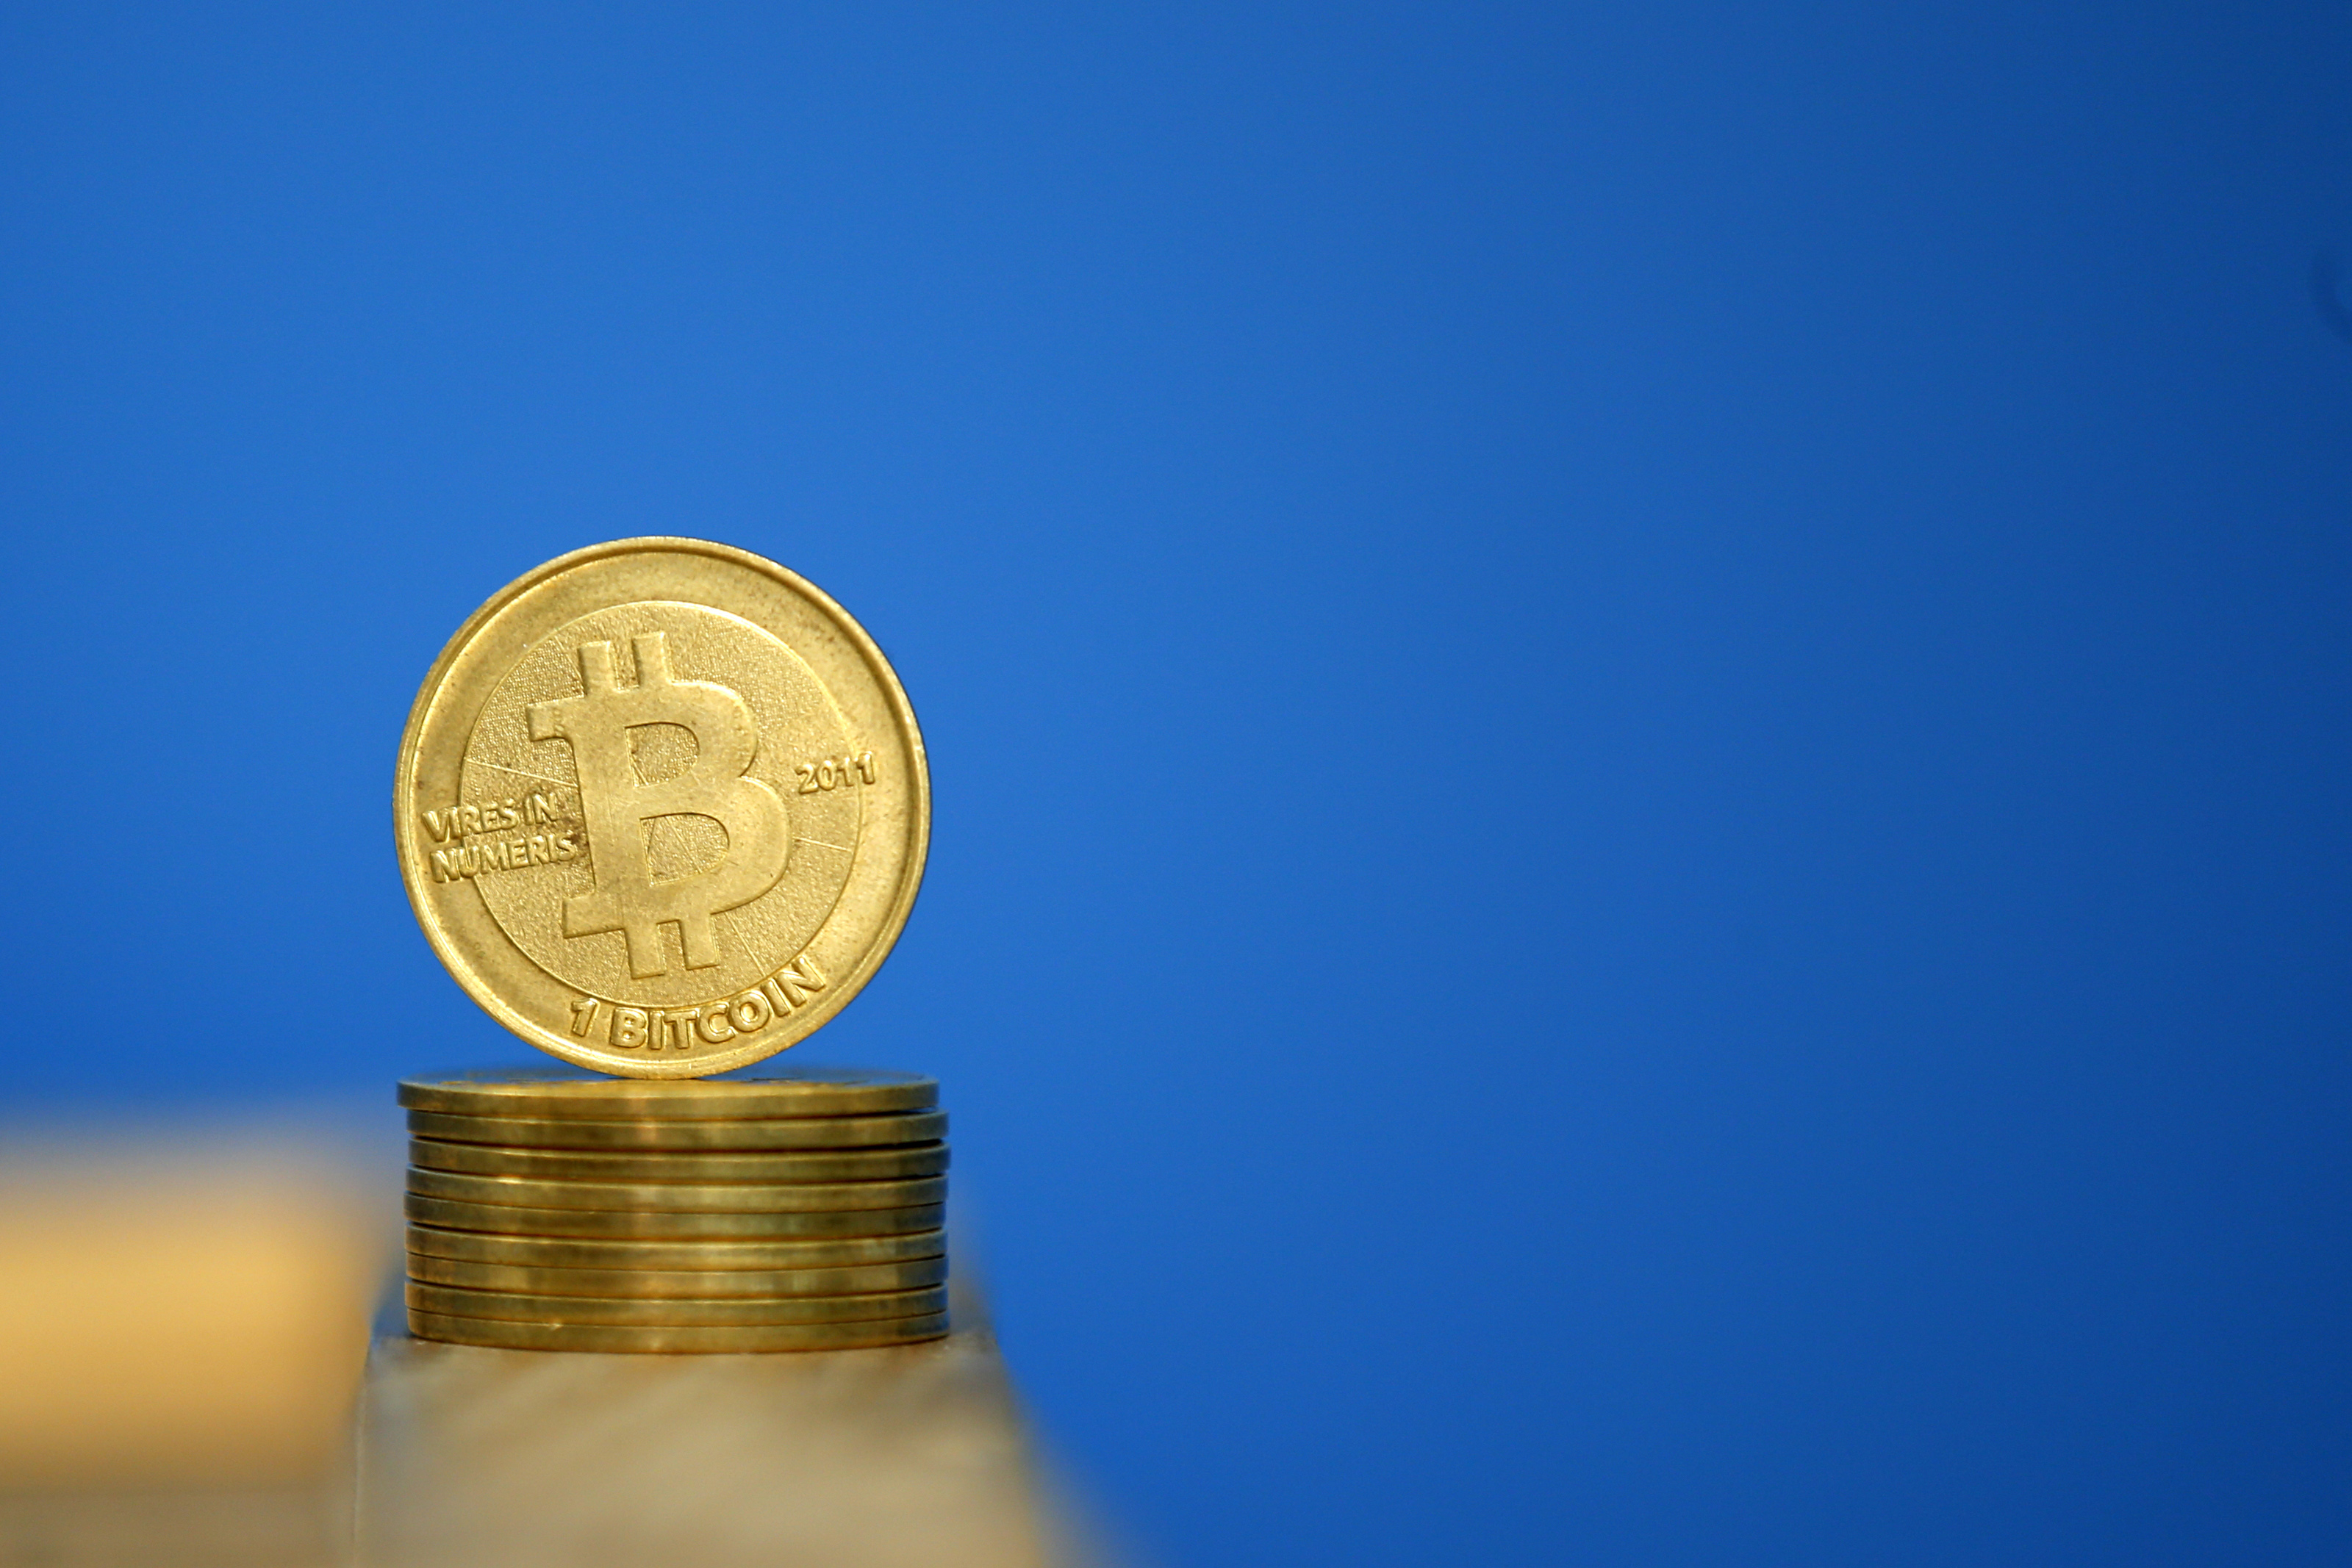 Founders of South African Bitcoin exchange disappear after $3.6 billion 'hack'